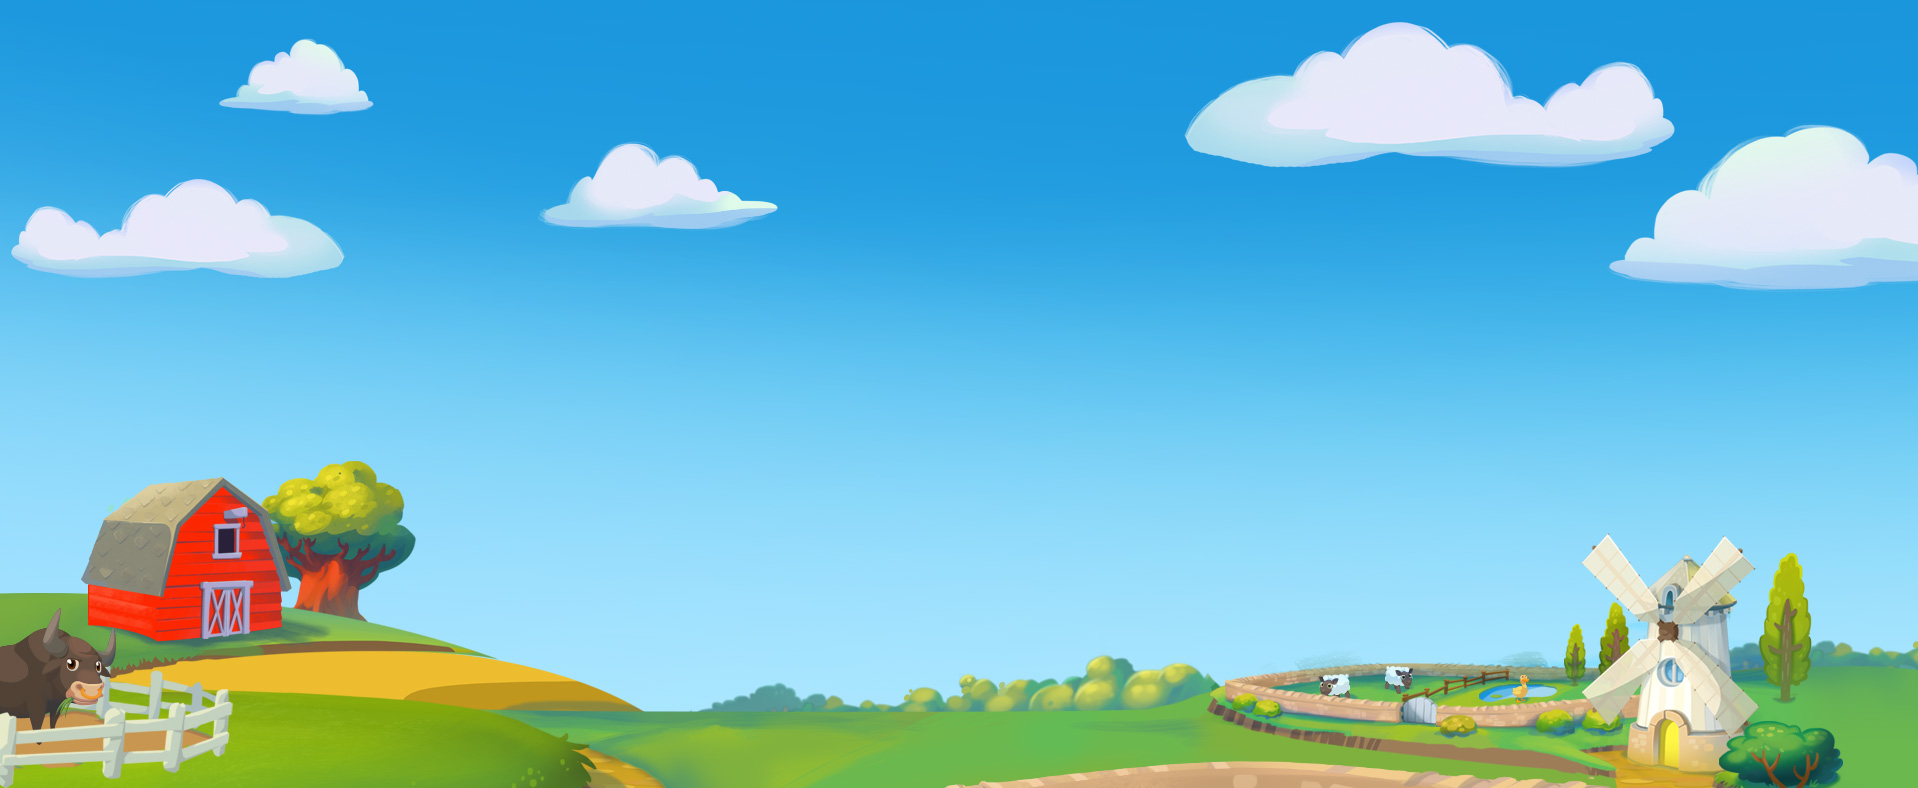 Farm Background PNG - 158143